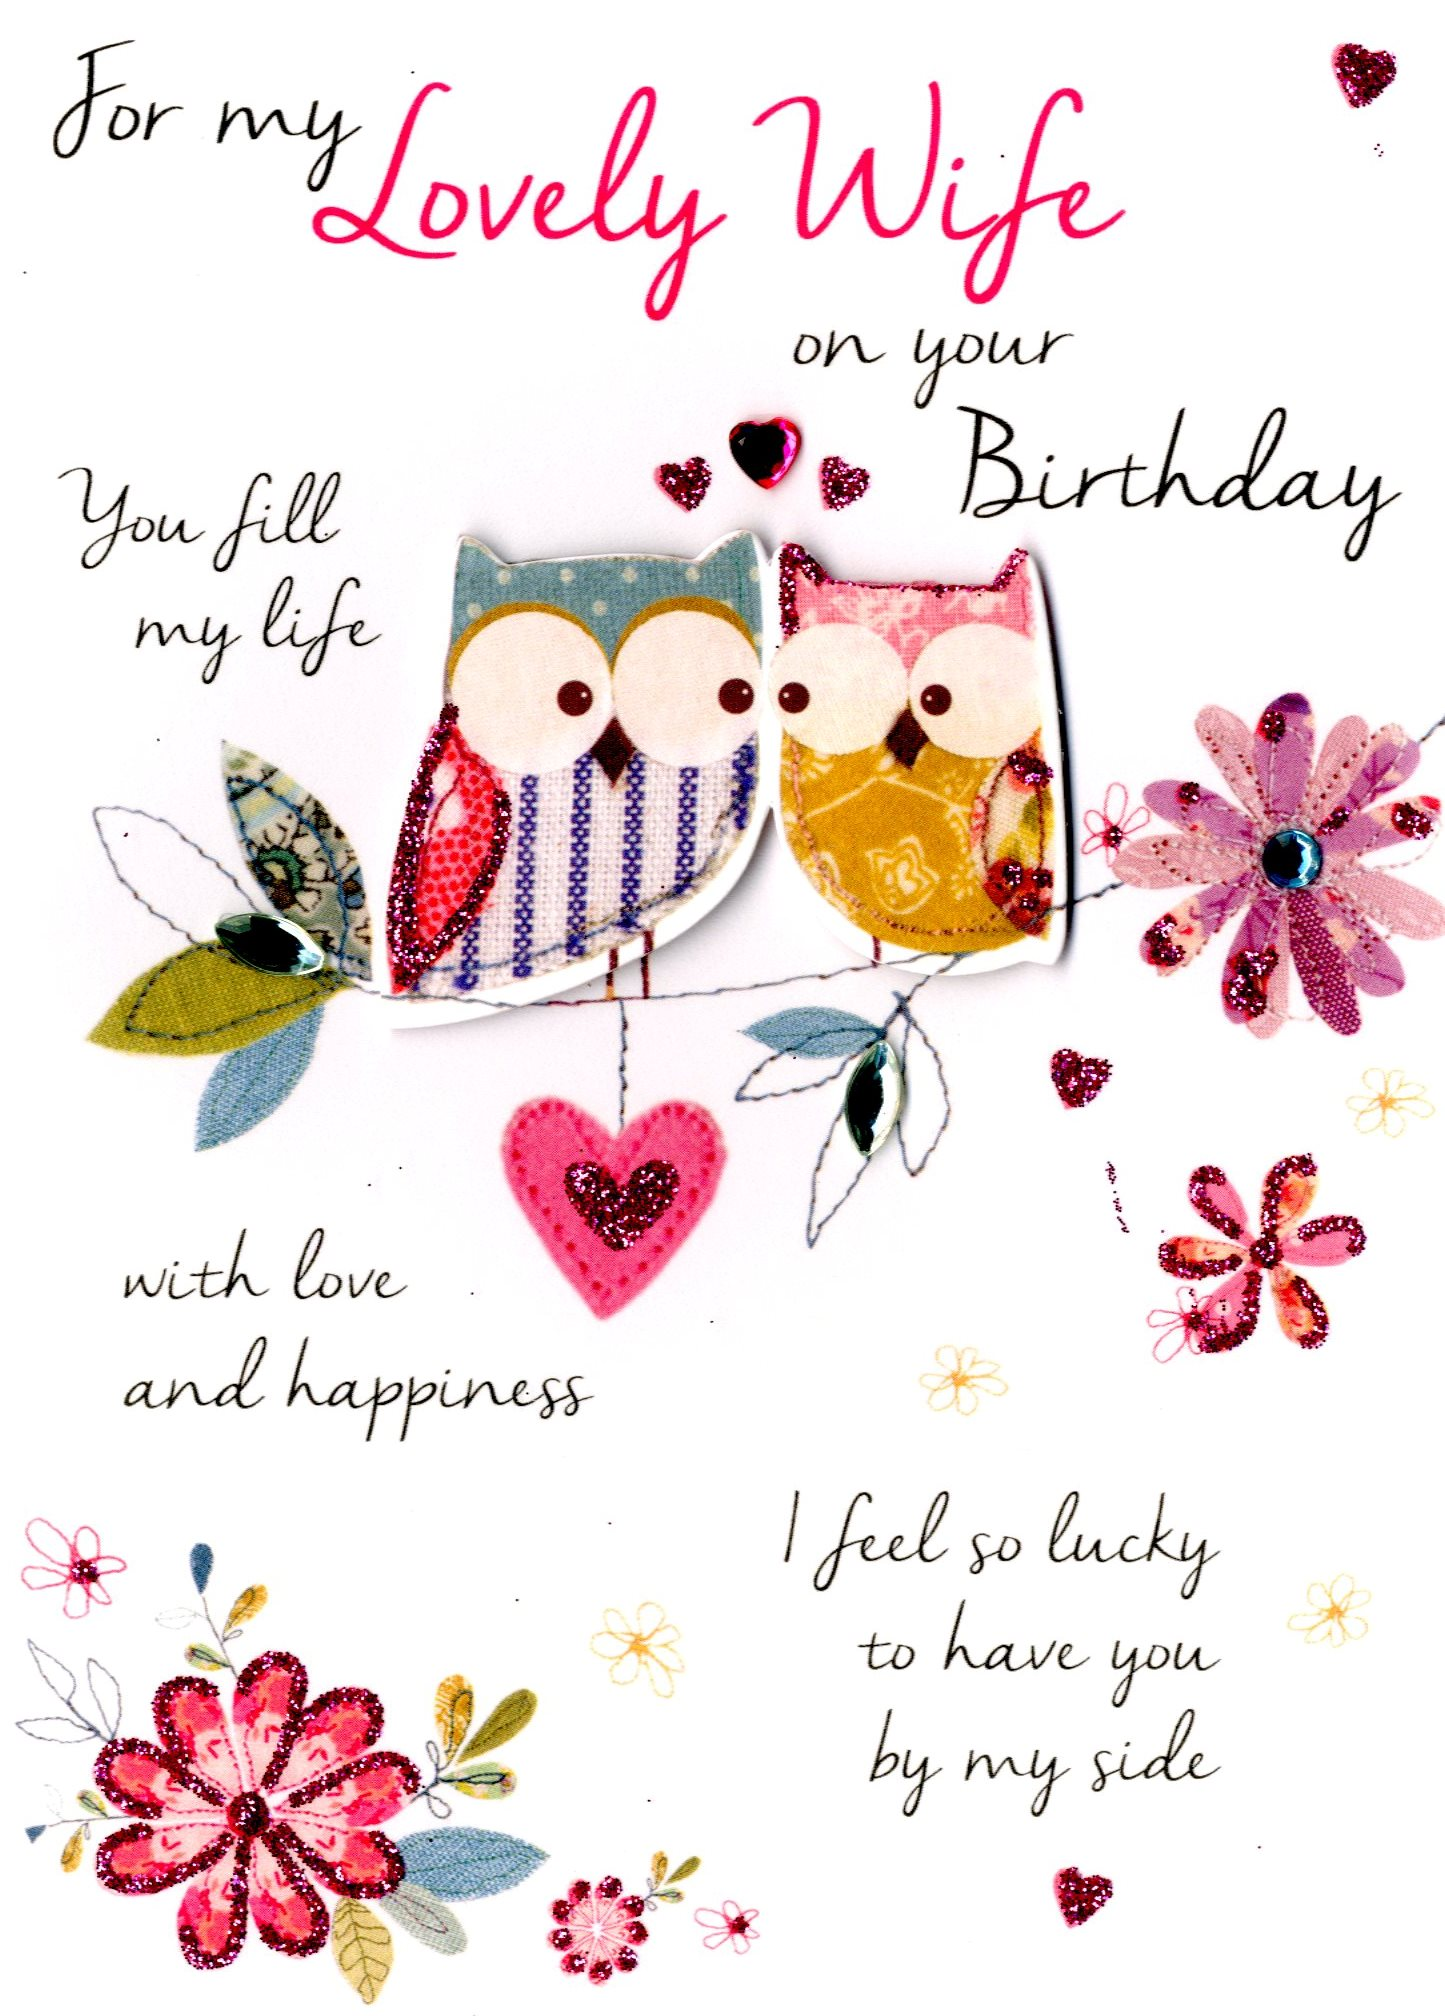 Lovely wife birthday greeting card cards love kates lovely wife birthday greeting card m4hsunfo